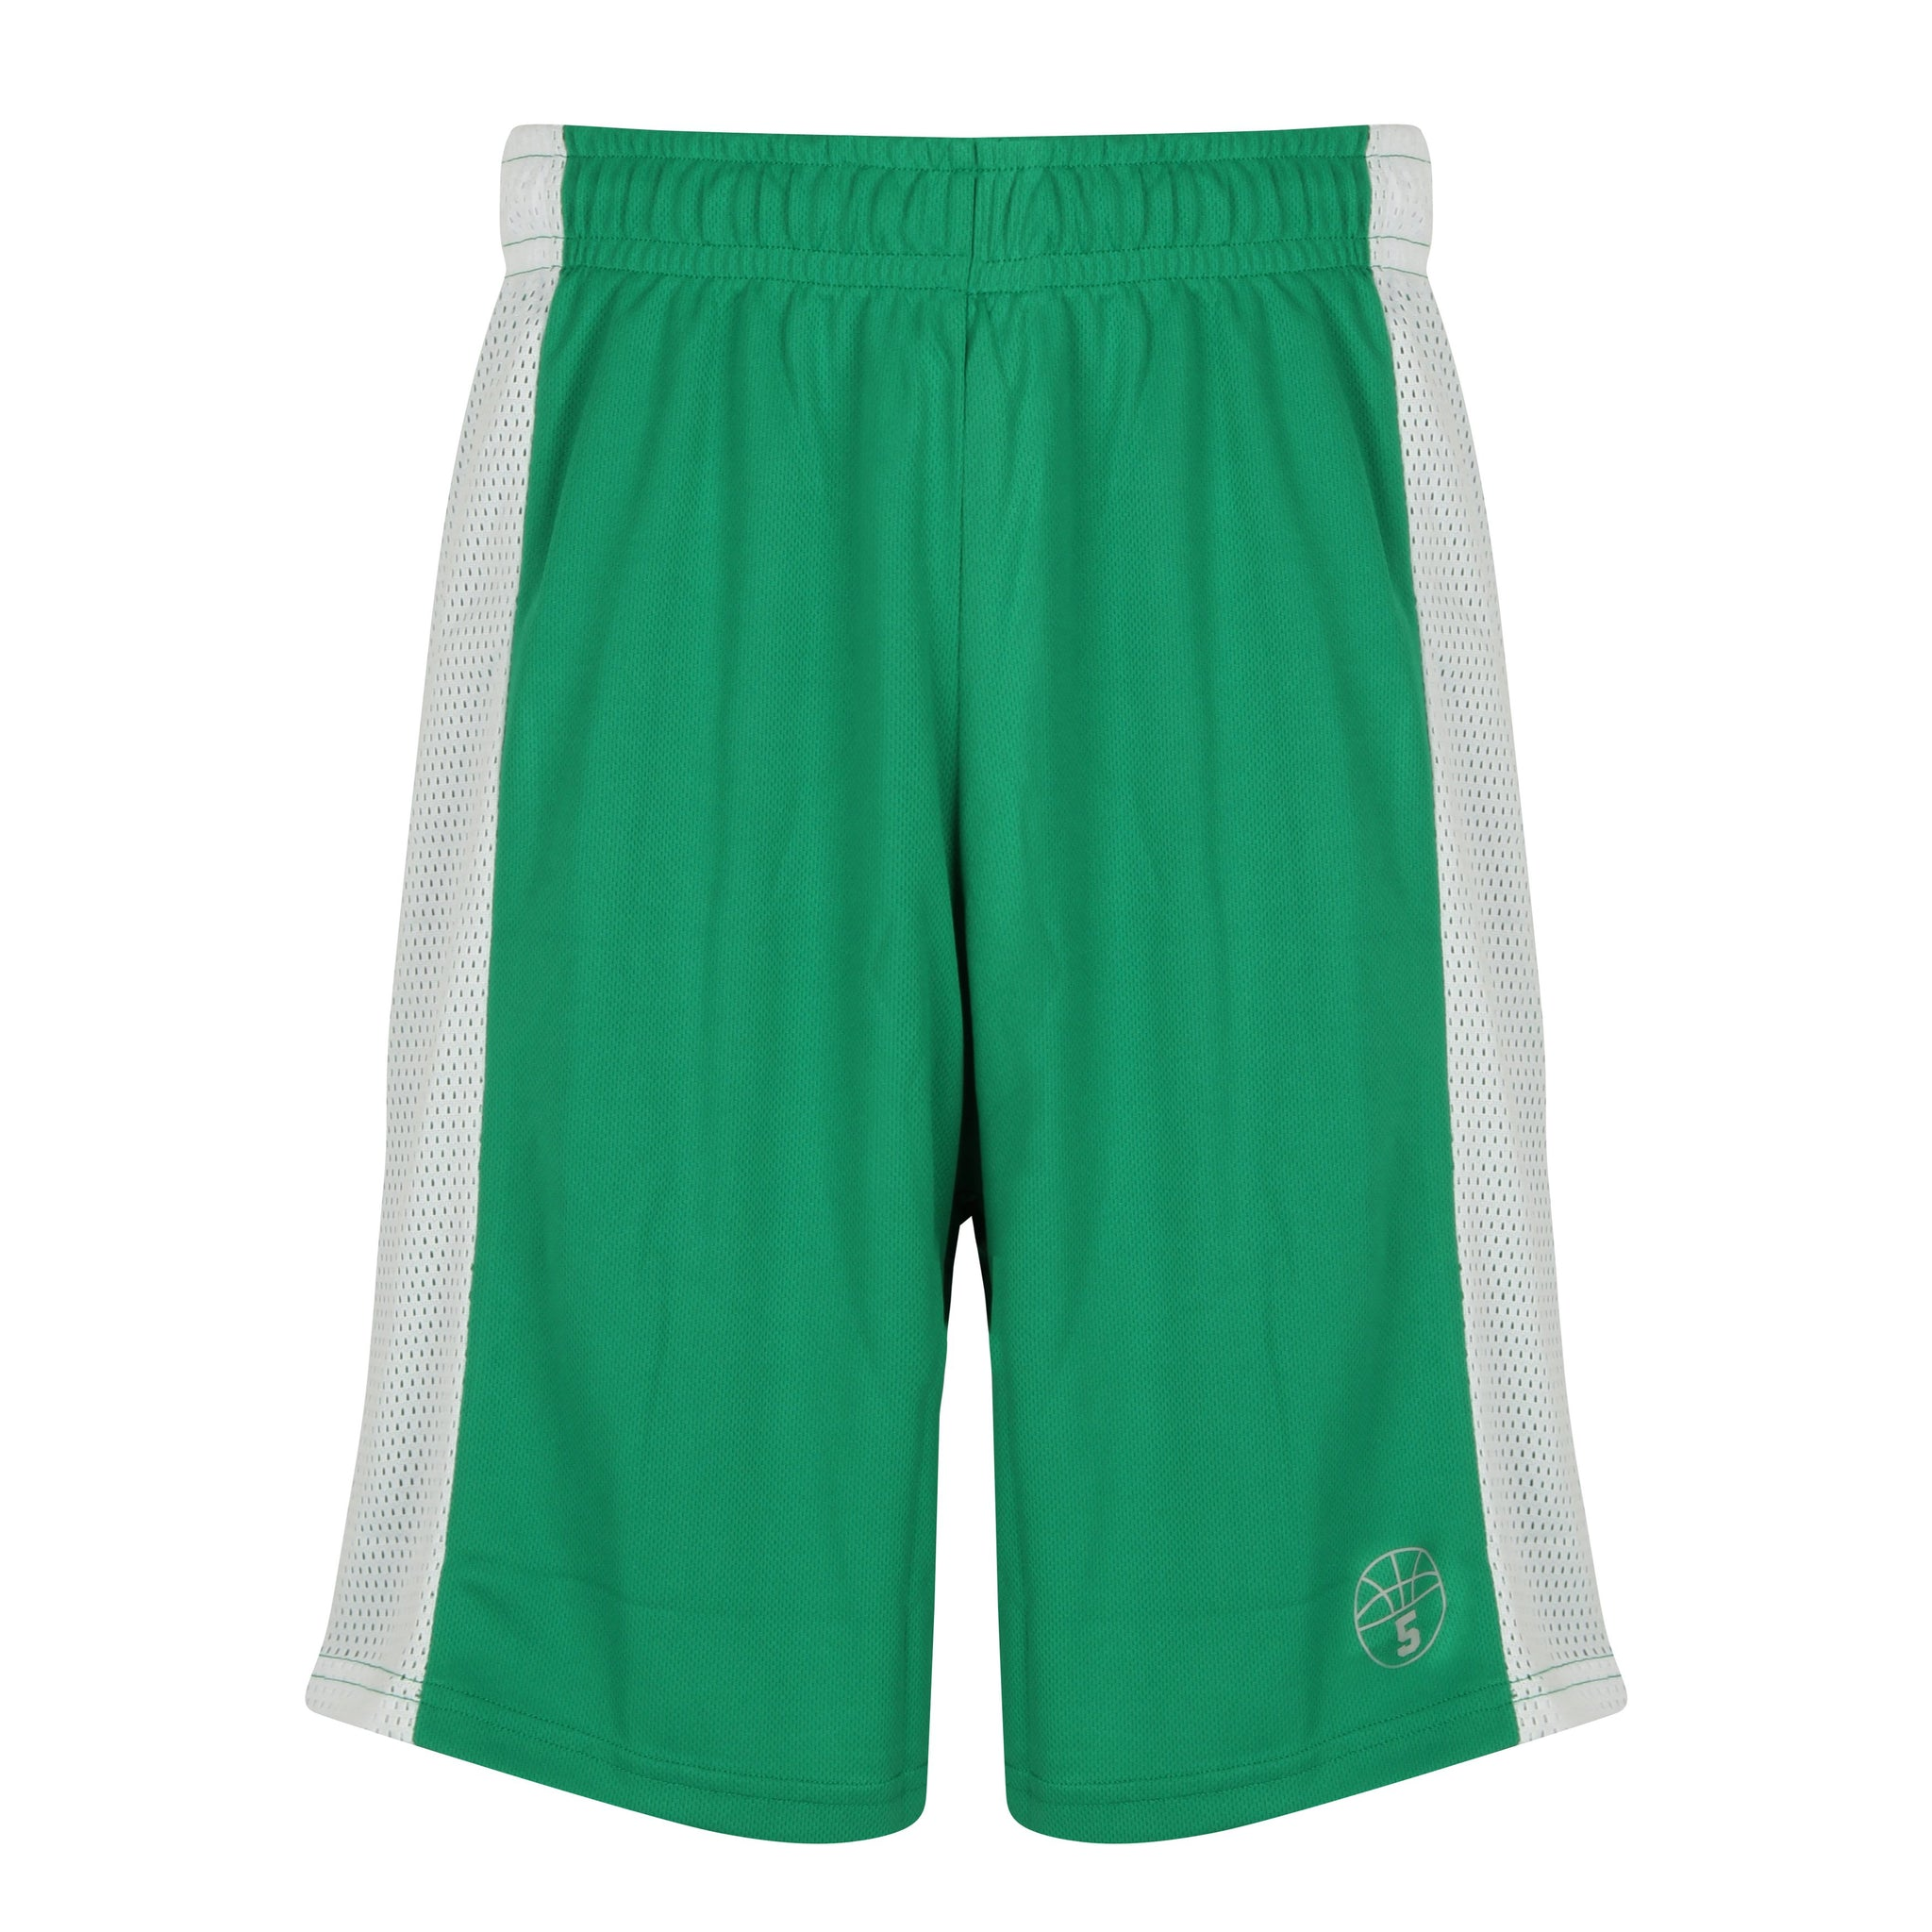 Franklin Reversible Basketball Playing Kit Green/White